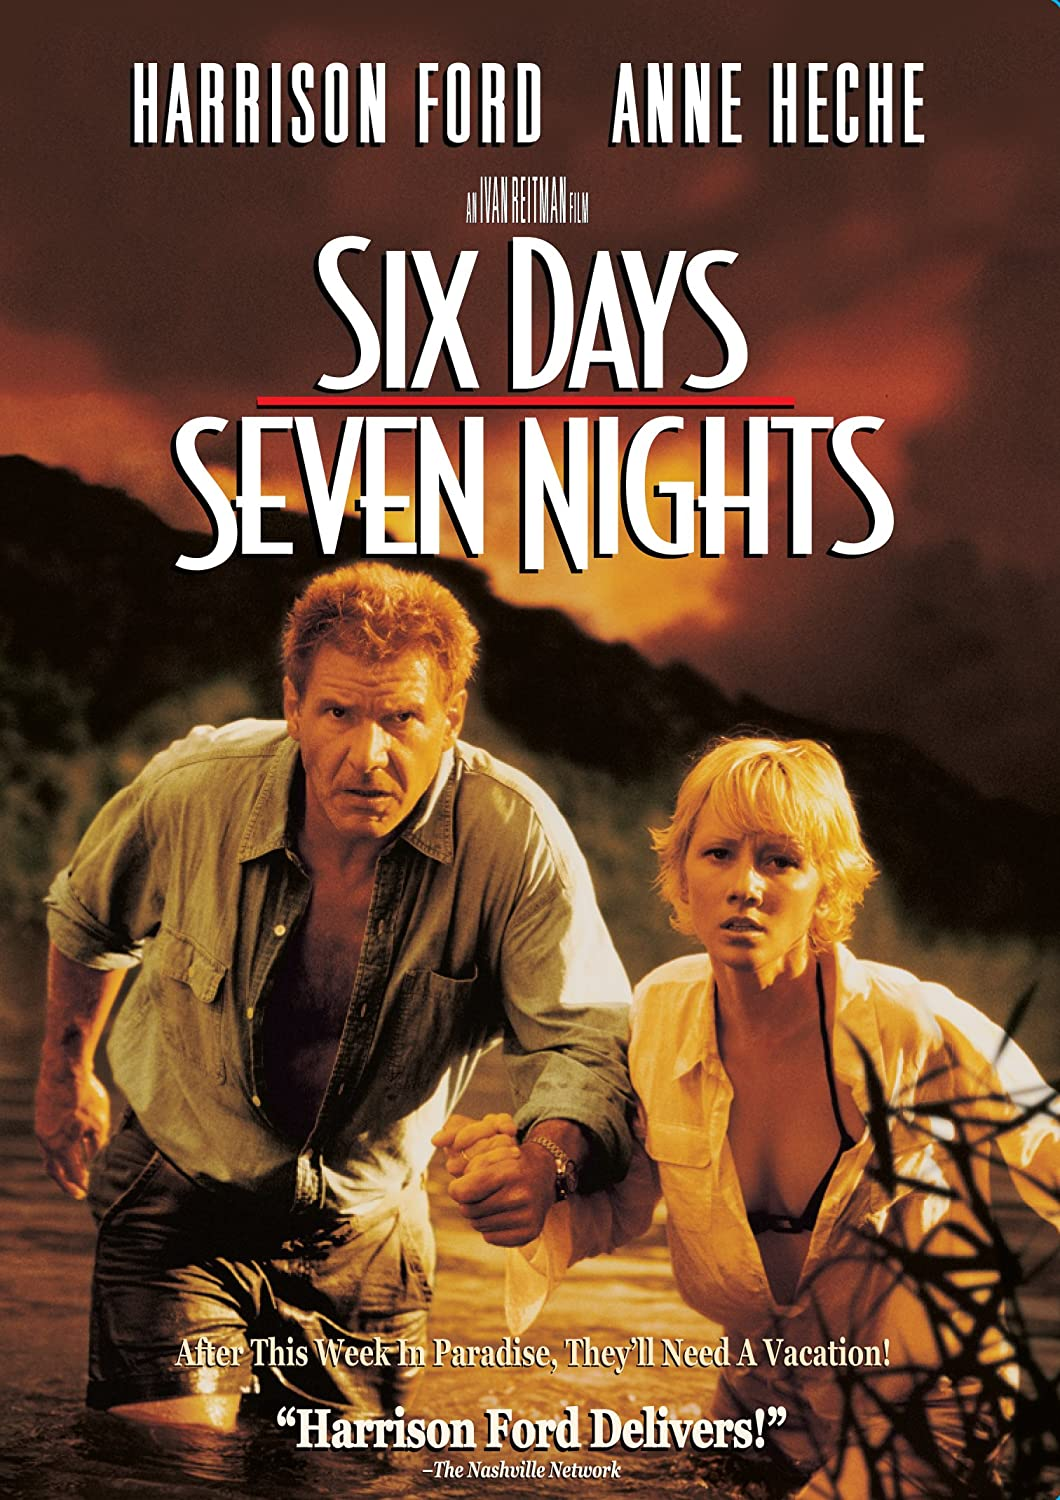 Six Days, Seven Nights (Widescreen) Harrison Ford Anne Heche David Schwimmer Jacqueline Obradors